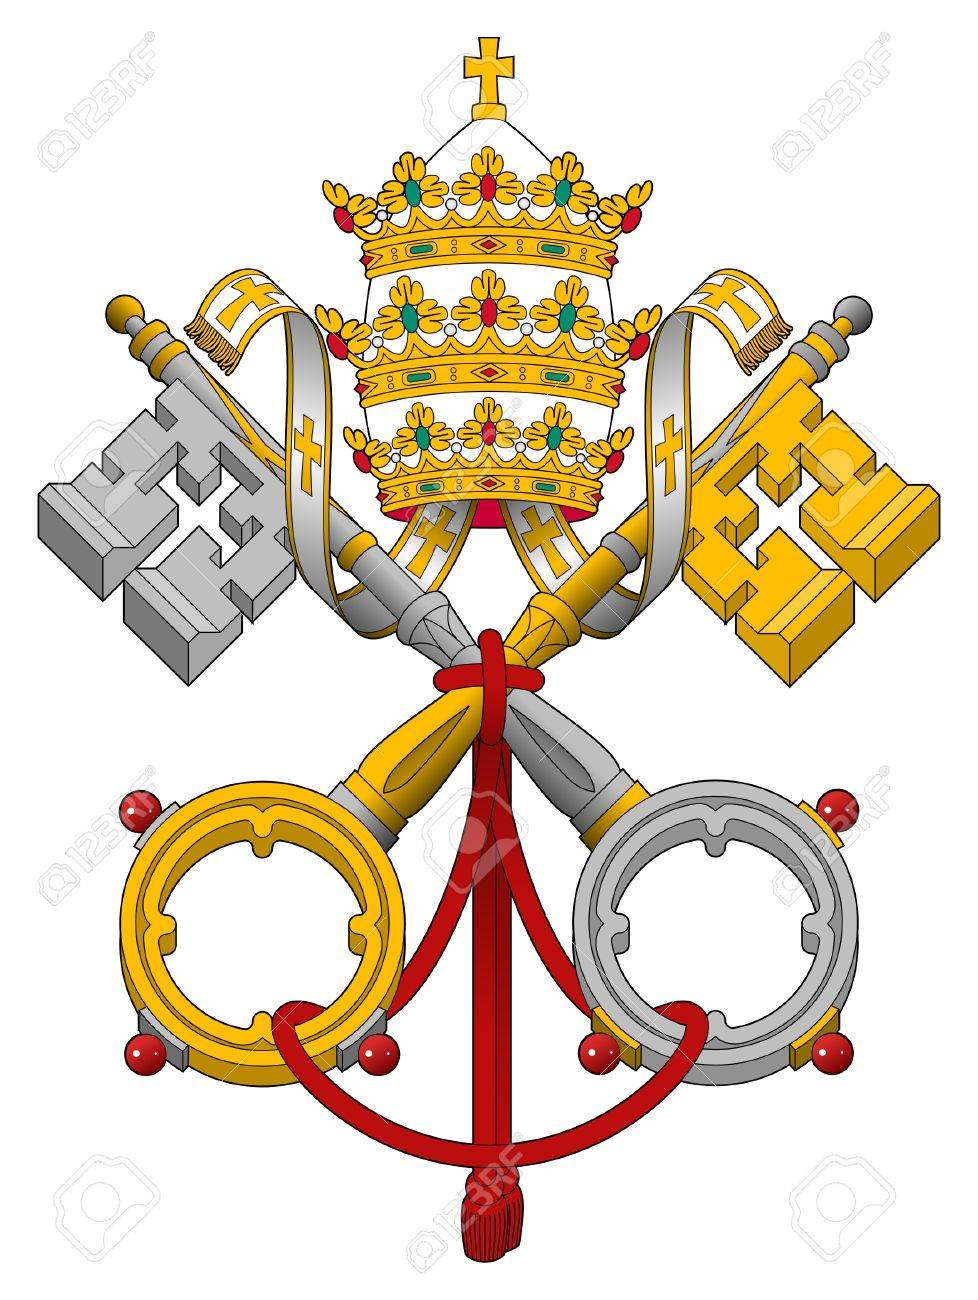 Embelm of Vatican City State showing cross keys, isolated on white background. - 8596062